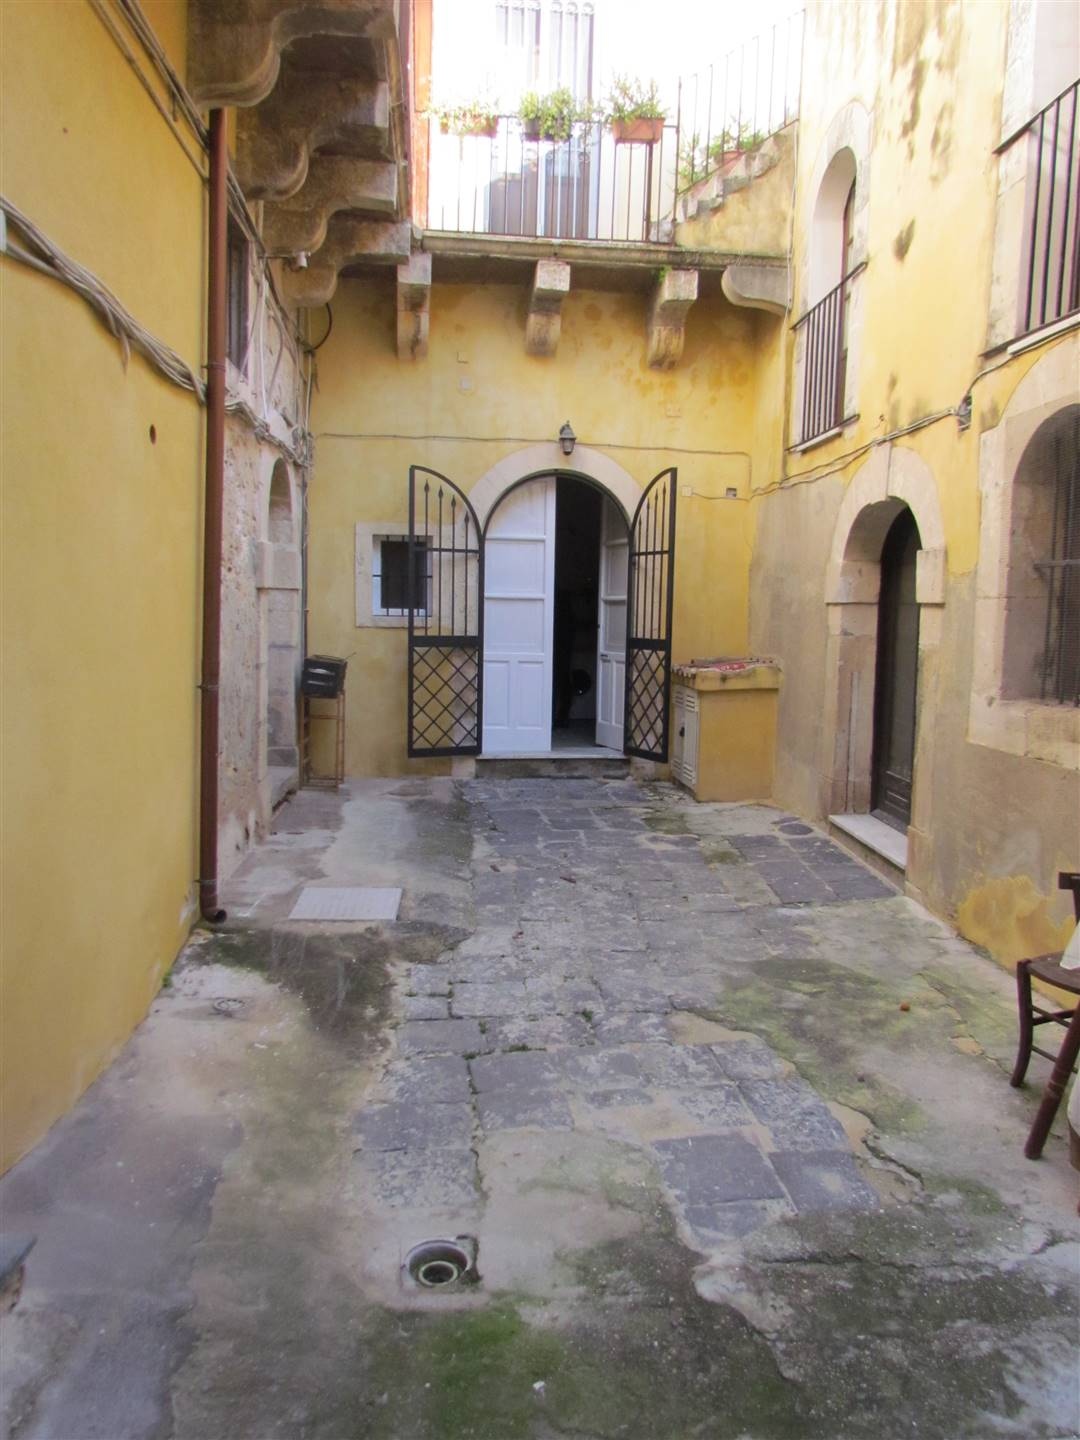 On the island of Ortigia in a former noble palace, we have a small 40 sqm apartment including mezzanine, located on the ground floor, consisting of